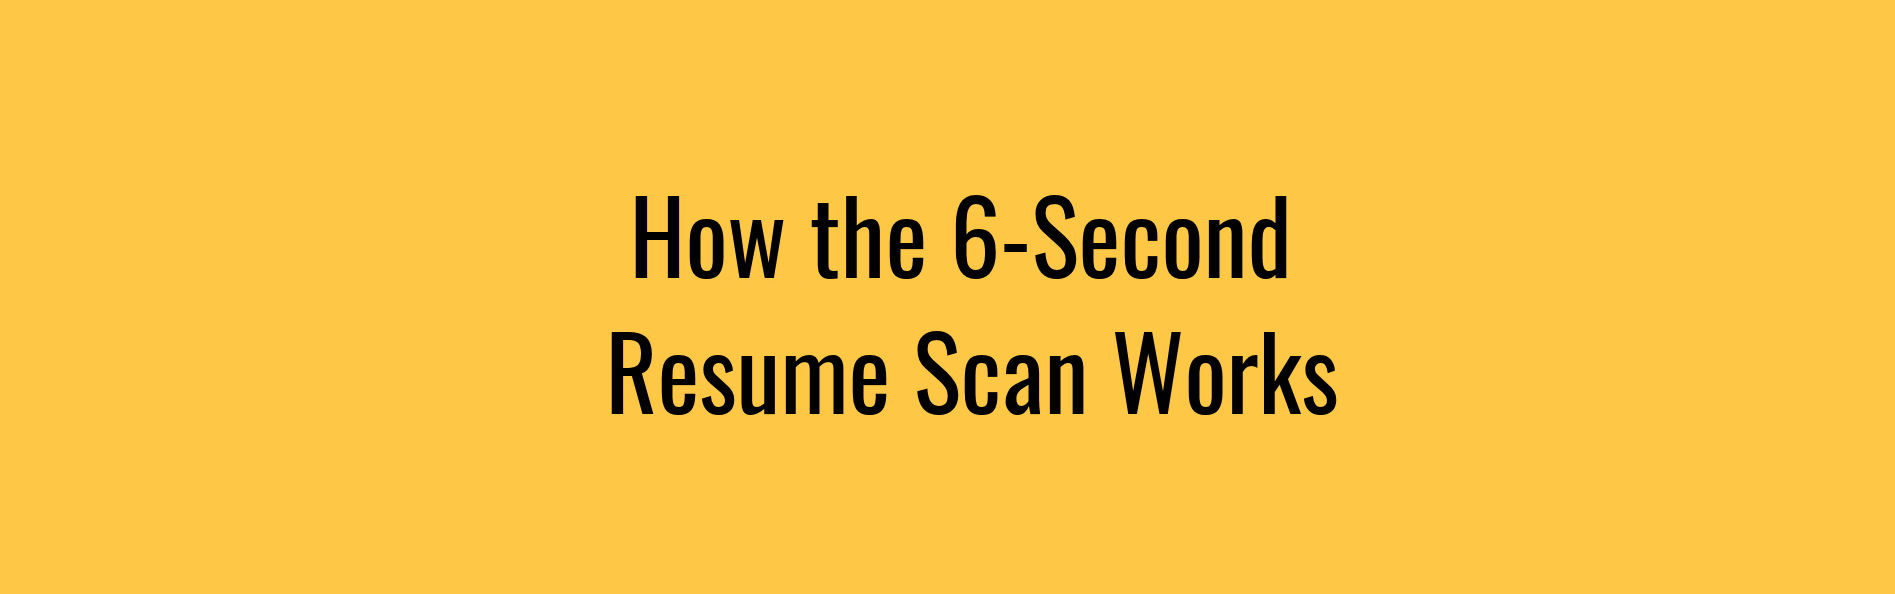 How Long do Recruiters Look at a Resume?